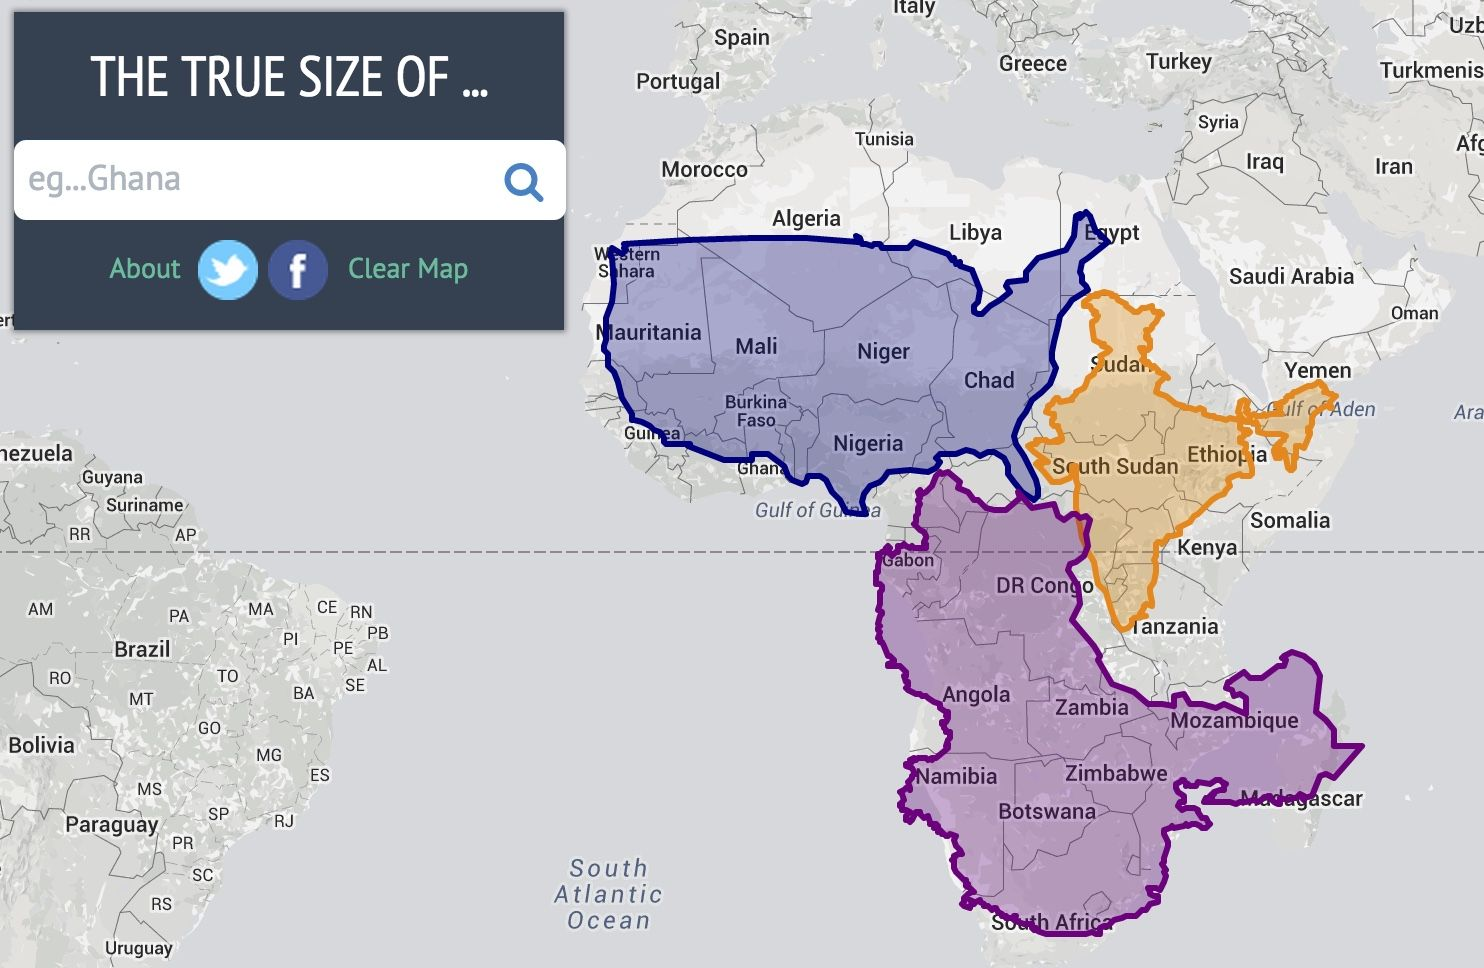 Drag and drop countries around the map to compare their relative countrieds on a globe vs flat map drag and drop countries around the map to compare their relative size is greenland really as big as all of africa gumiabroncs Images